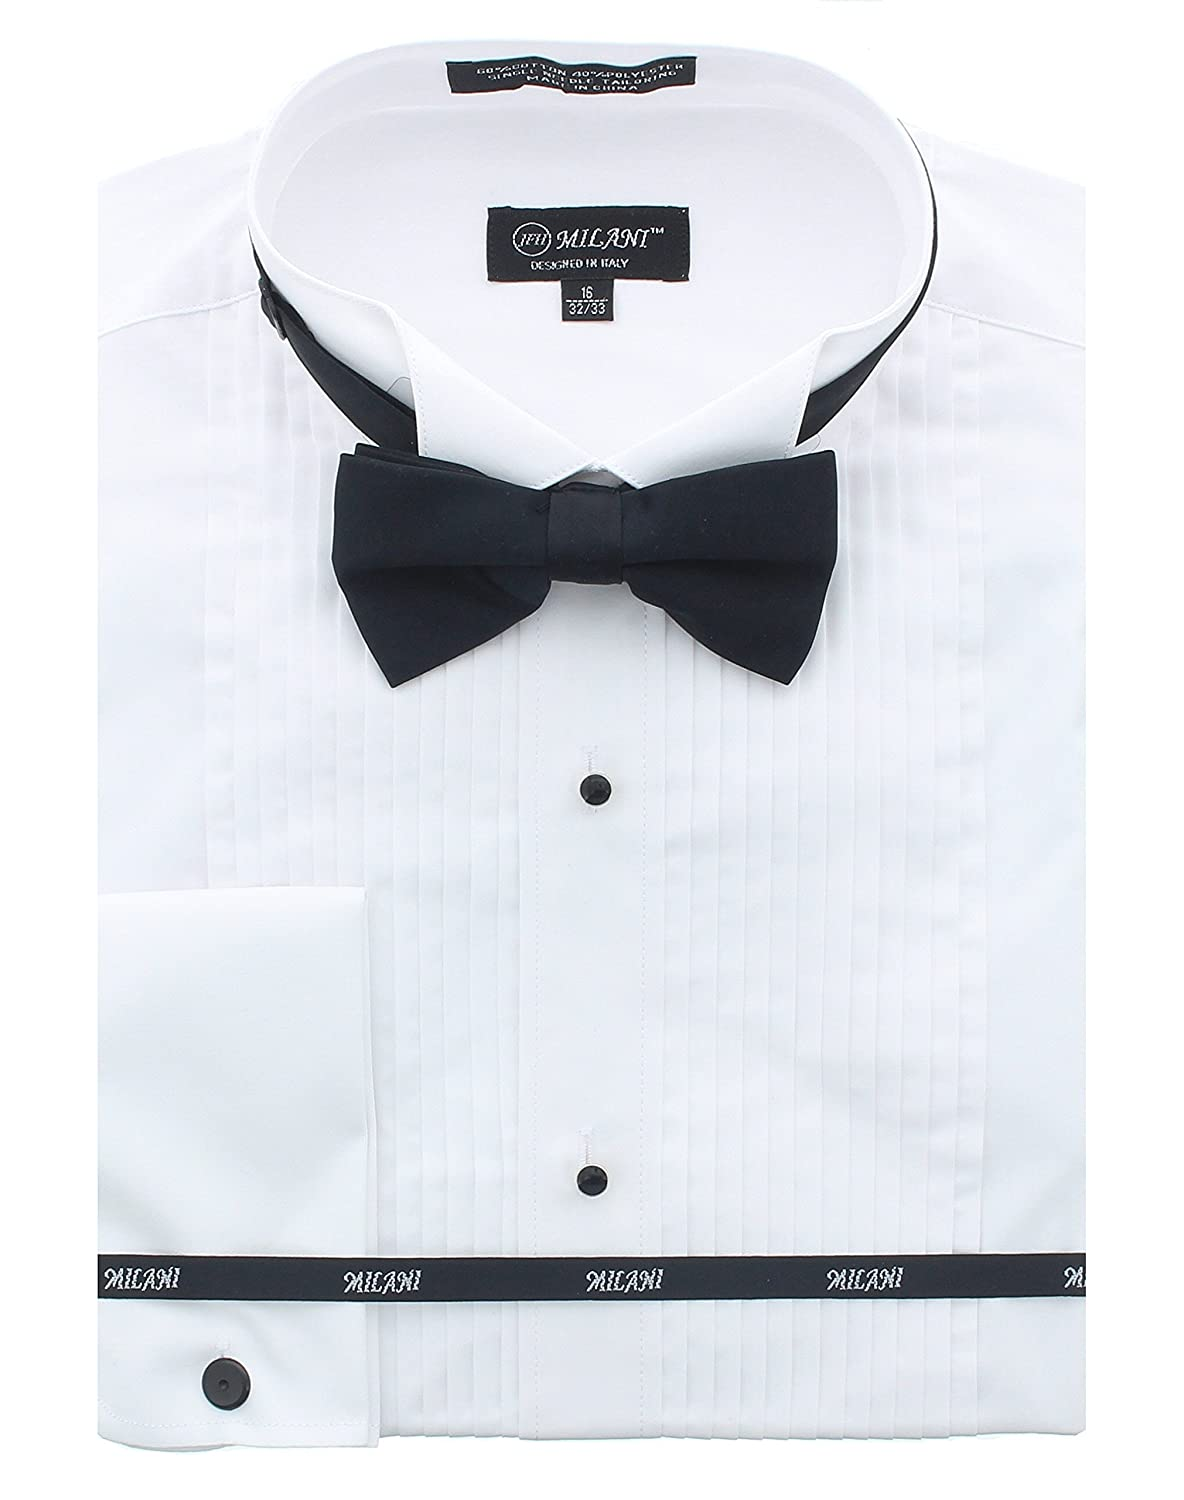 Milani Men's Tuxedo Shirts With French Cuffs And Bow Tie TSF01-WHT22-$P